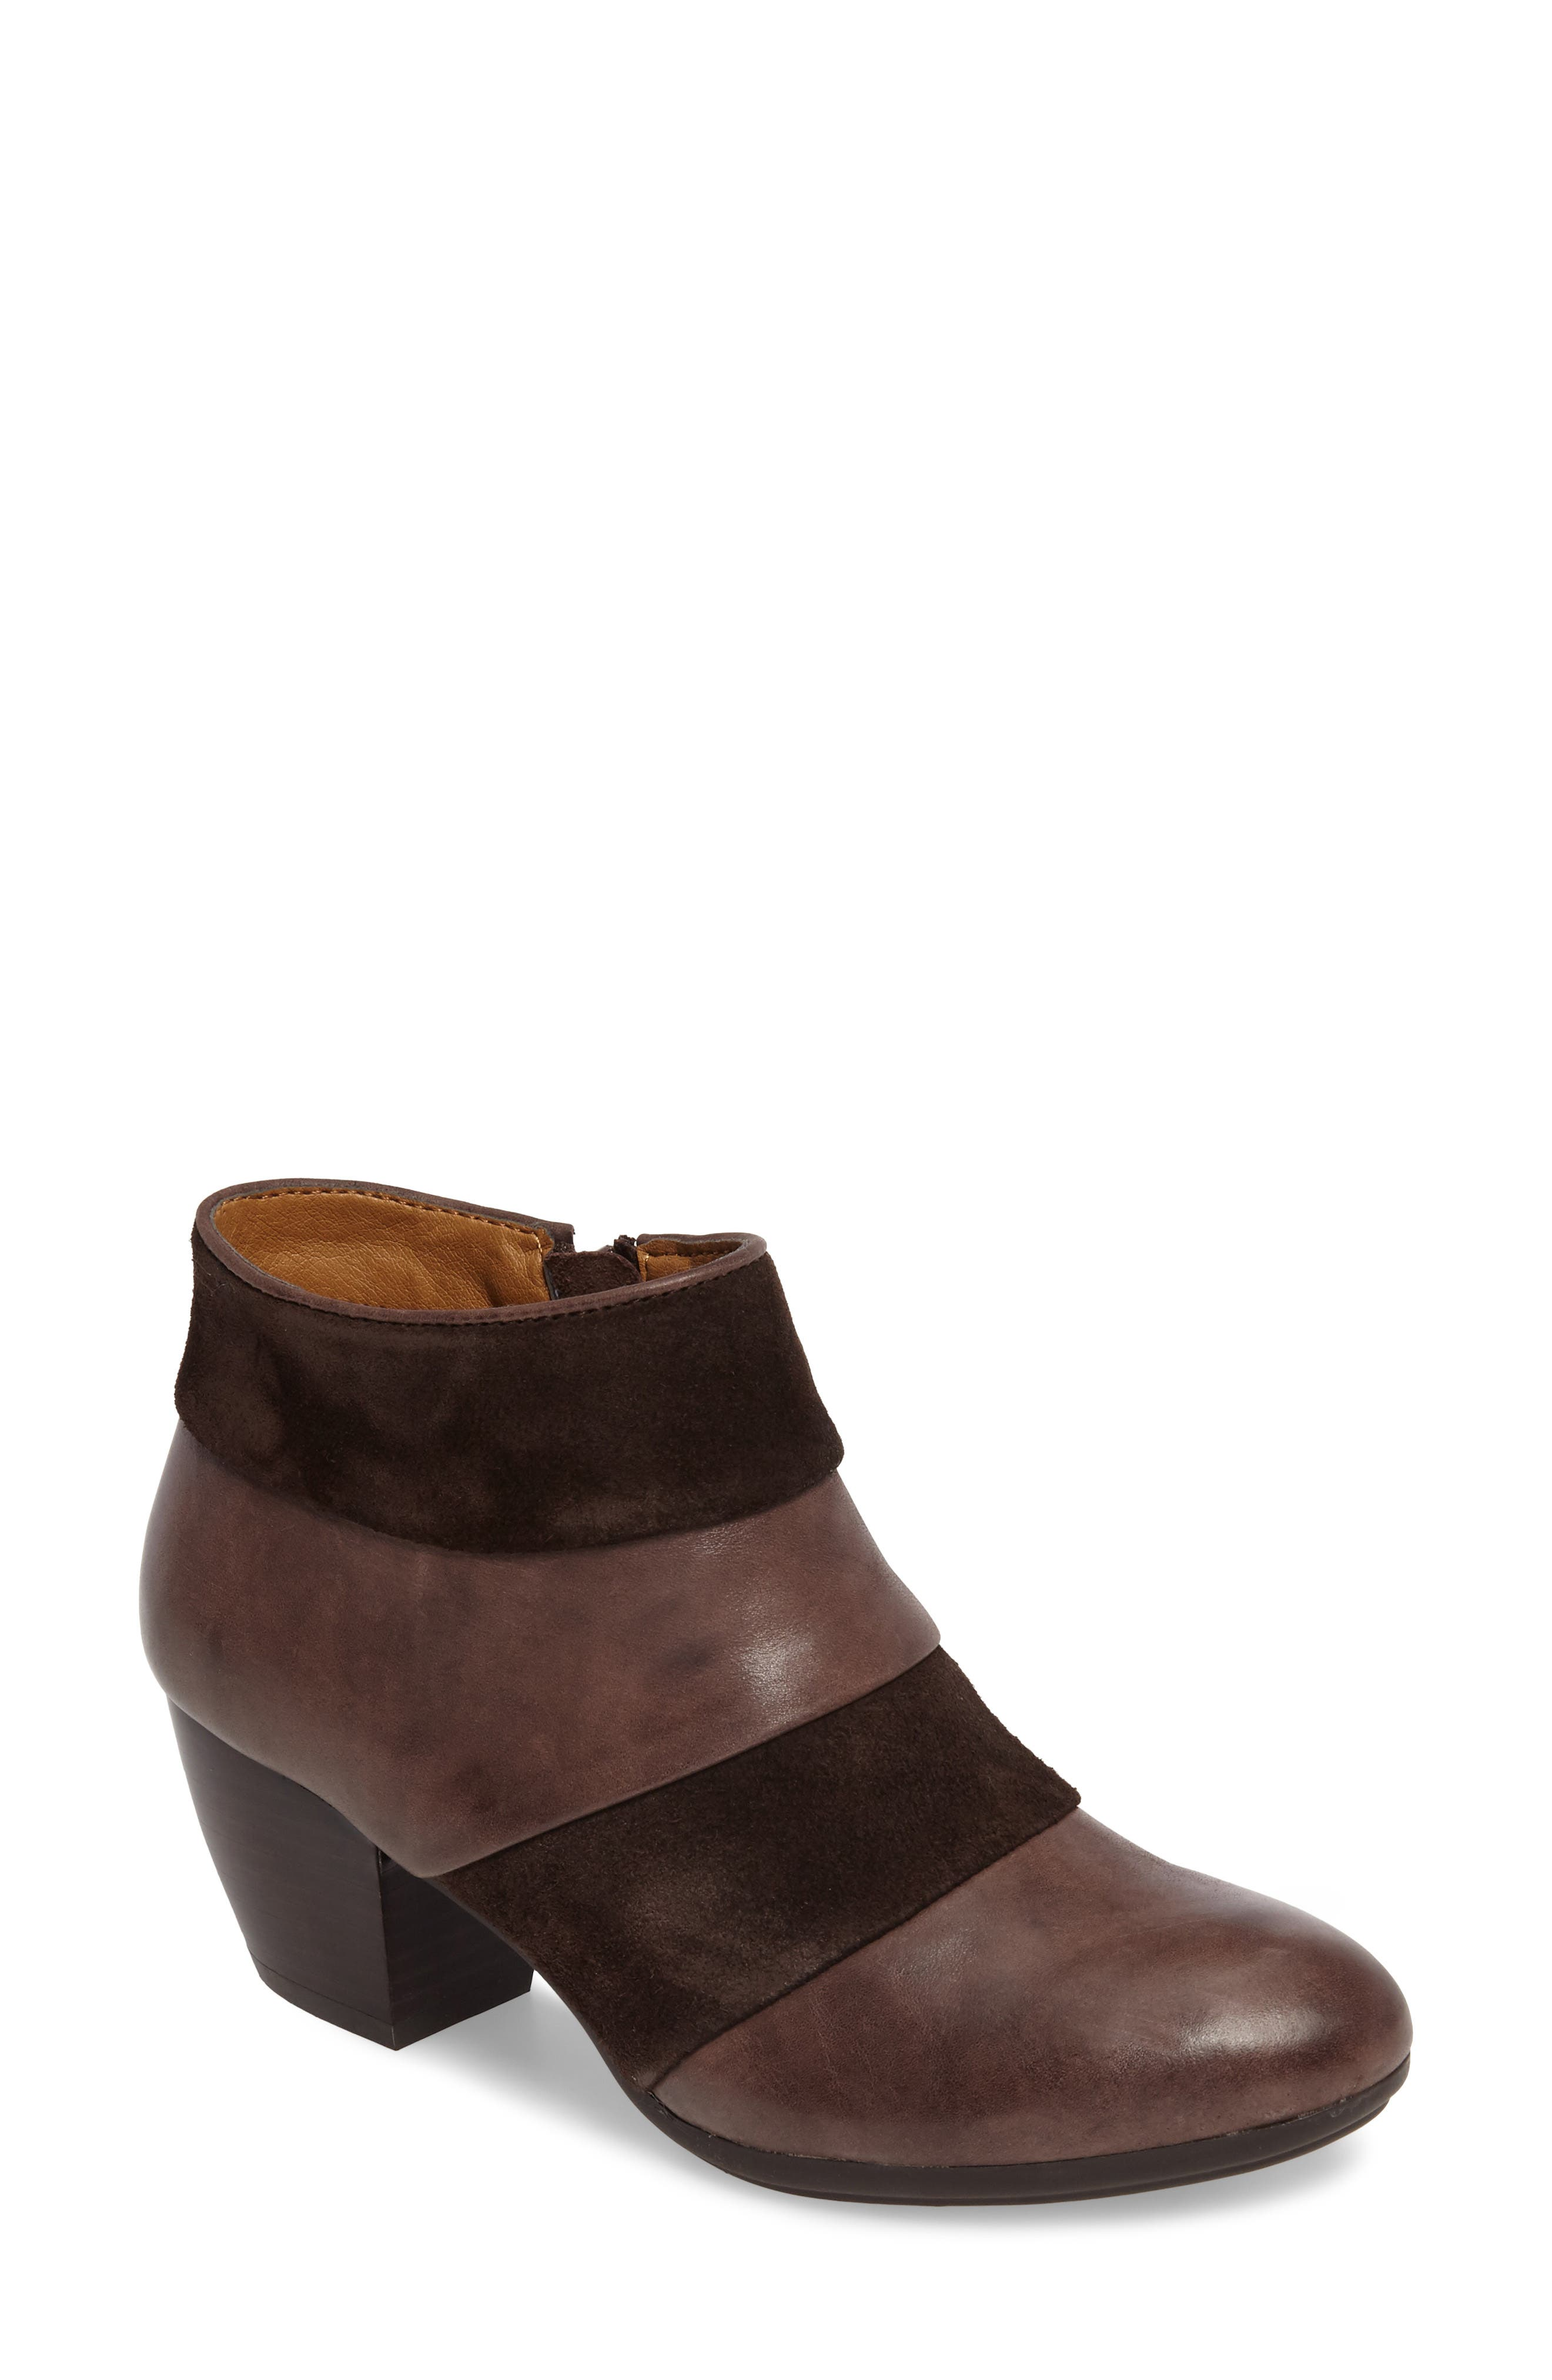 Alternate Image 1 Selected - Comfortiva Amesbury Colorblock Bootie (Women)